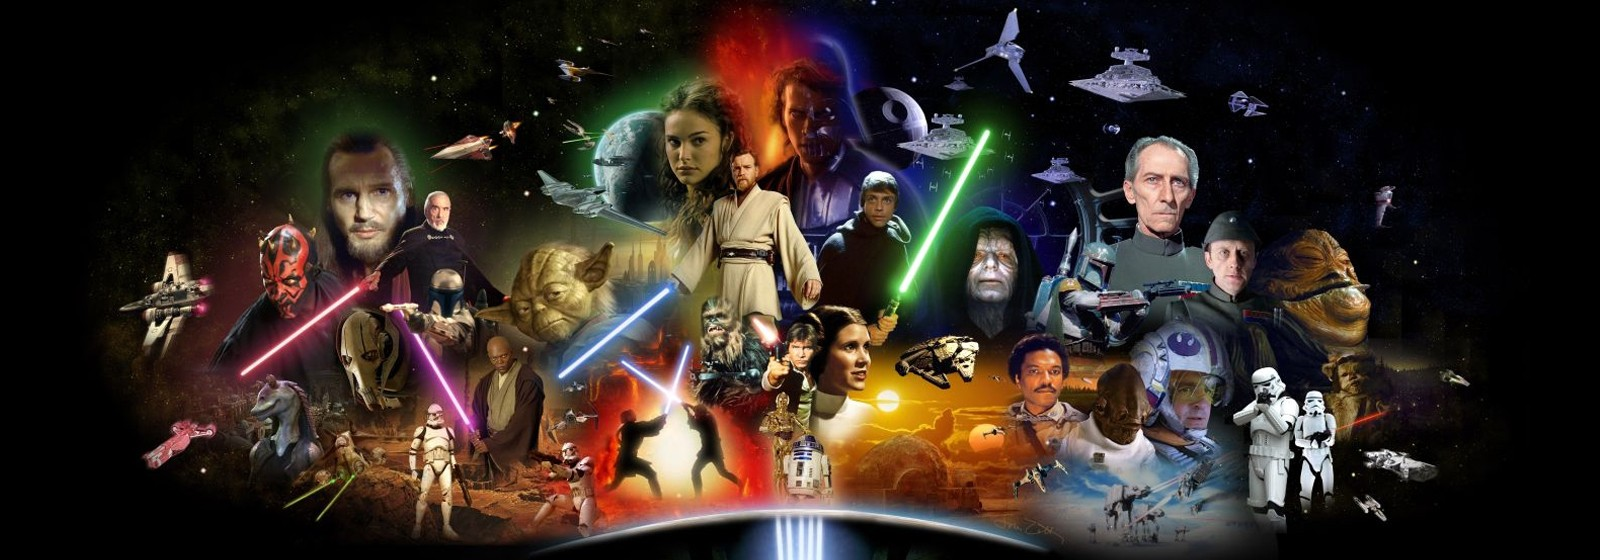 Especial May the 4th